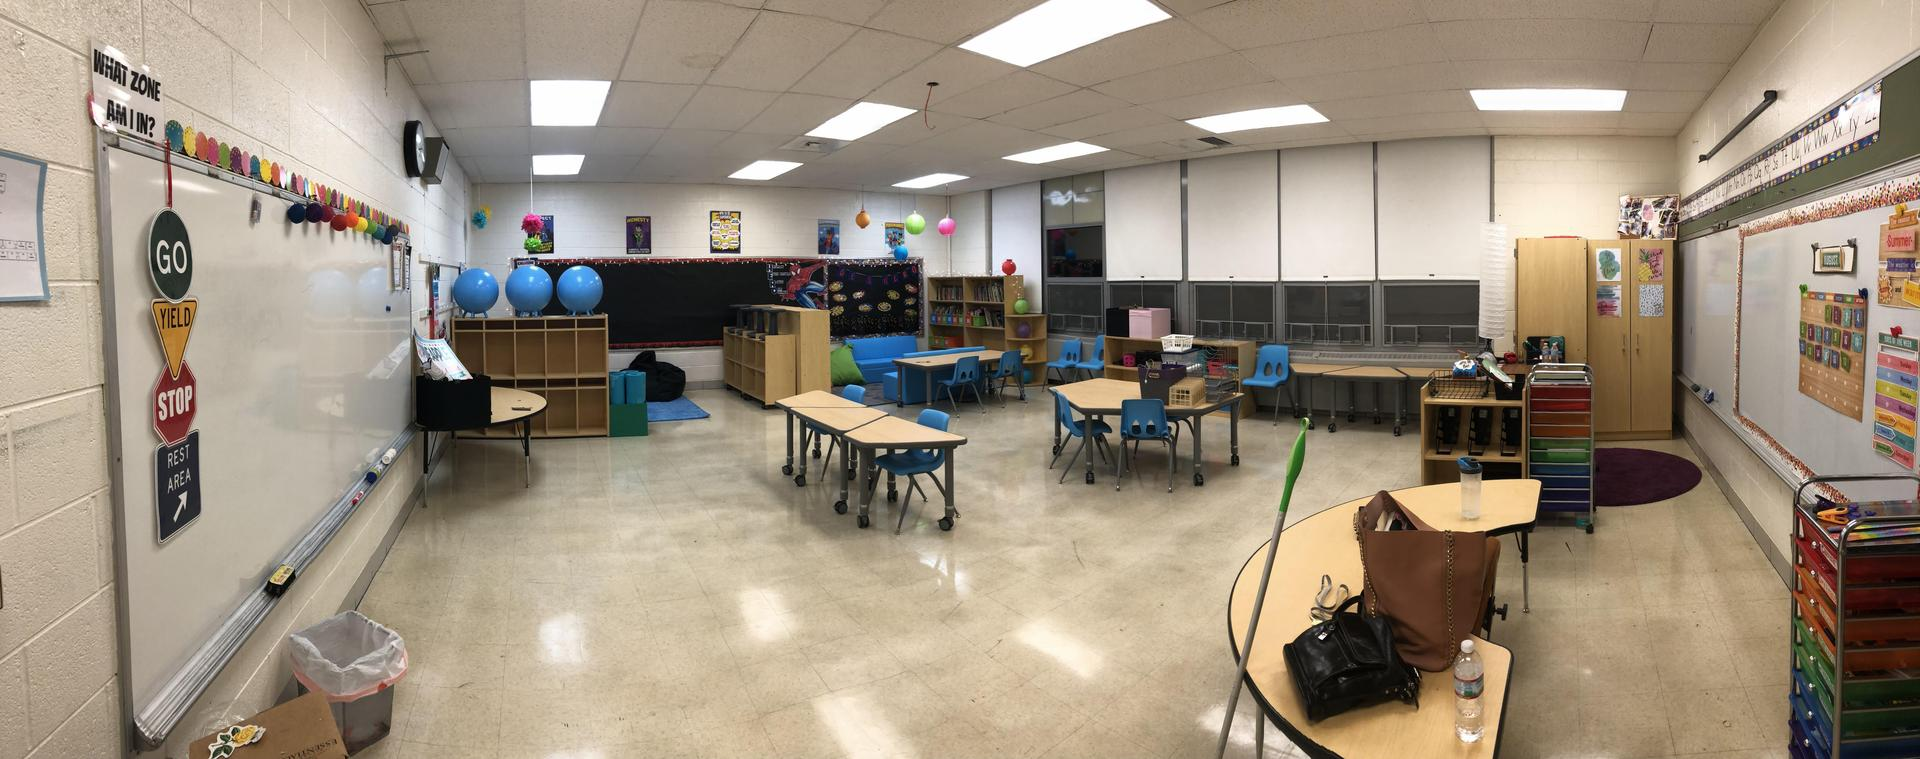 Panoramic view of our classroom.